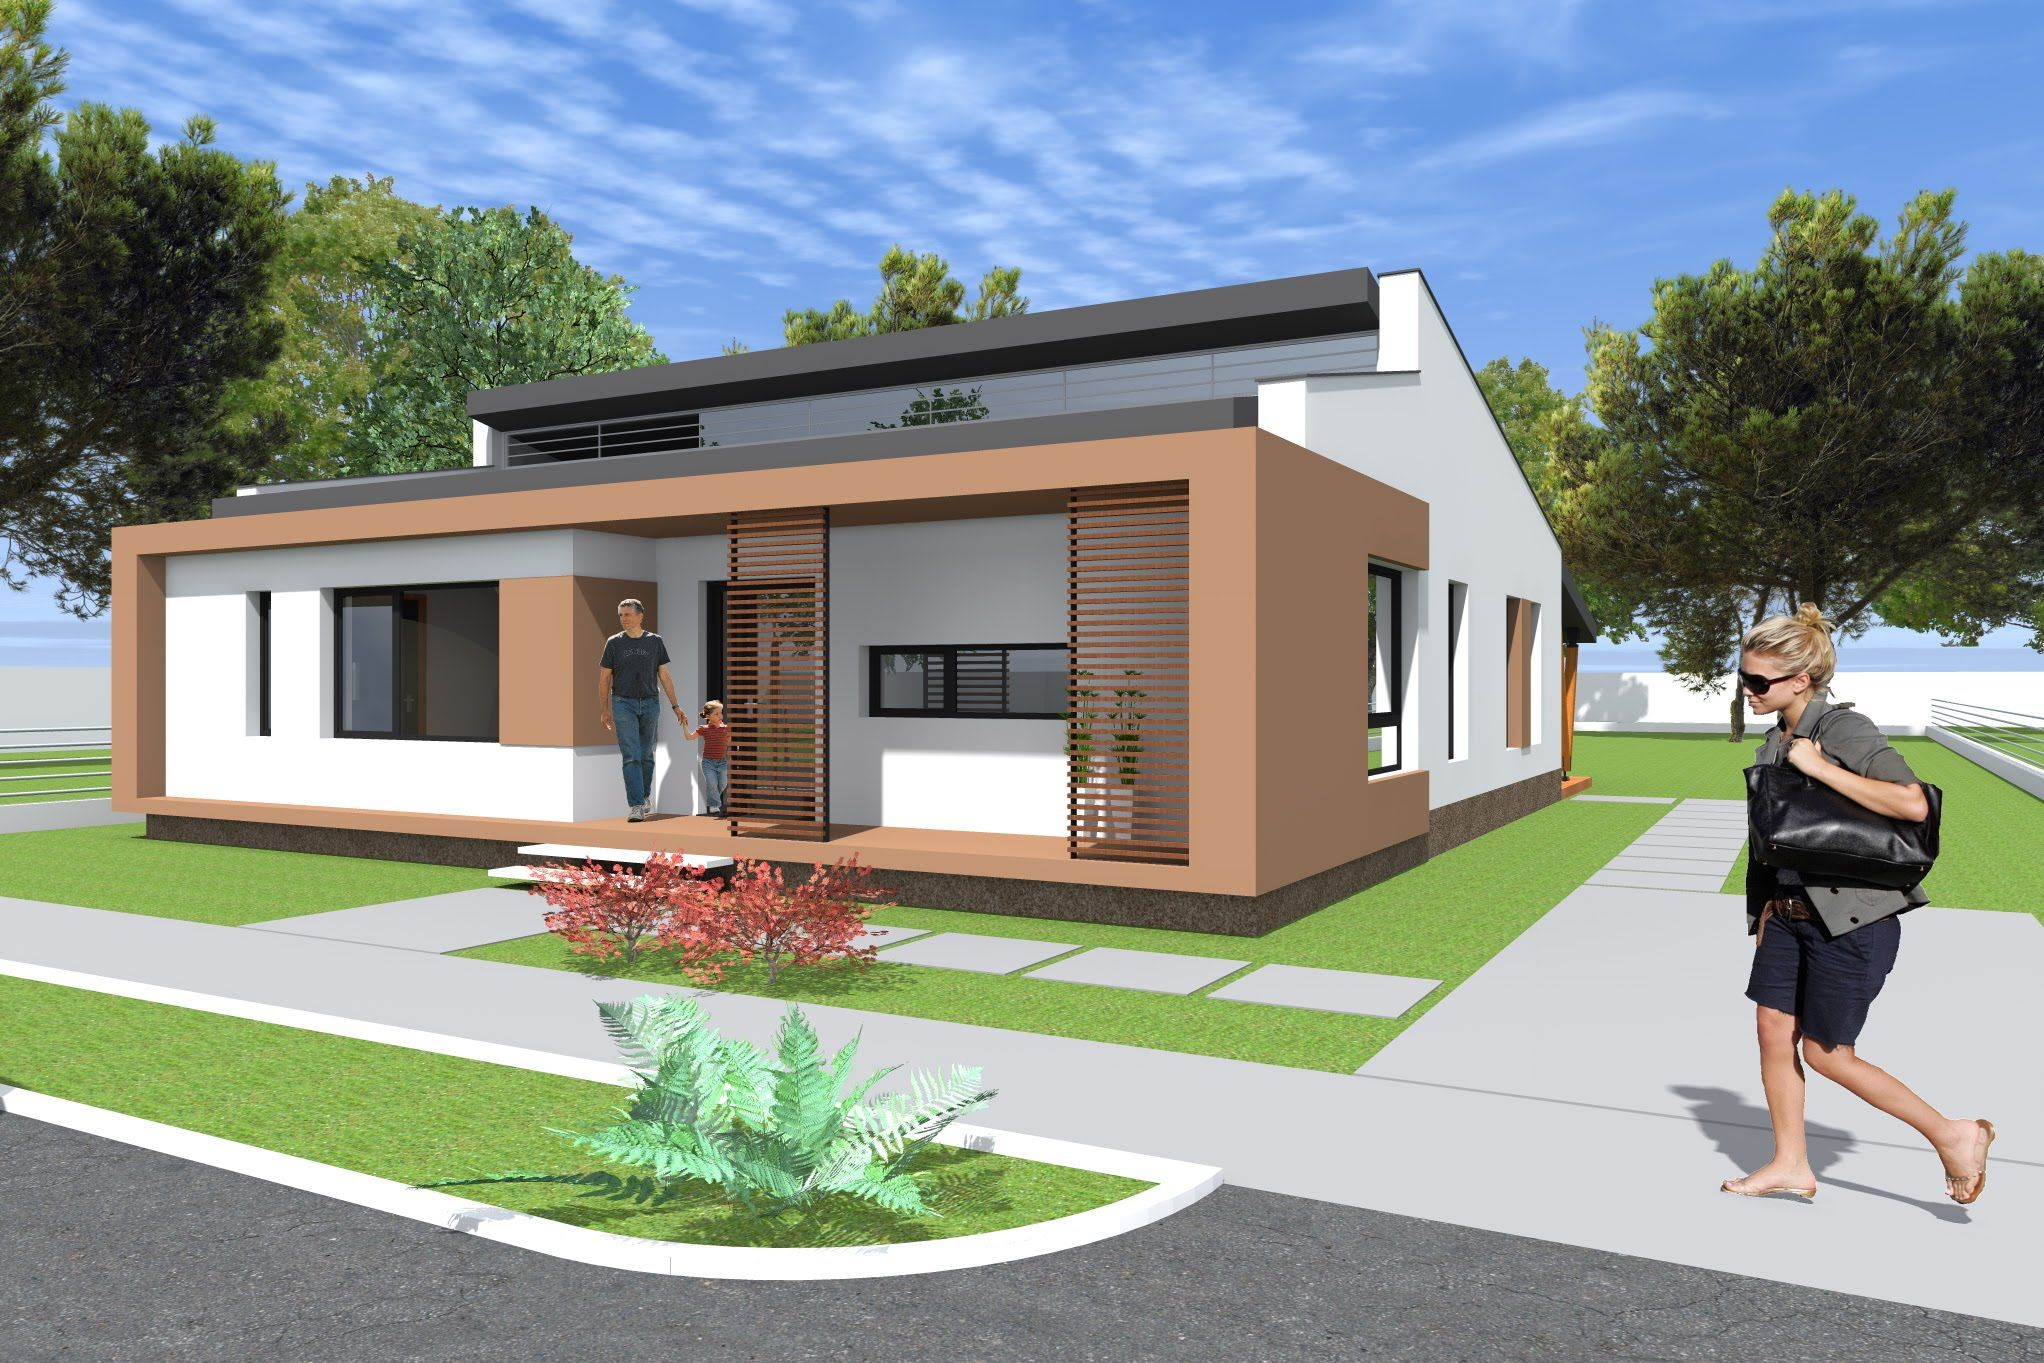 small modern bungalow house design 133 square meters 1431 sq feet arc youtube videos. Black Bedroom Furniture Sets. Home Design Ideas